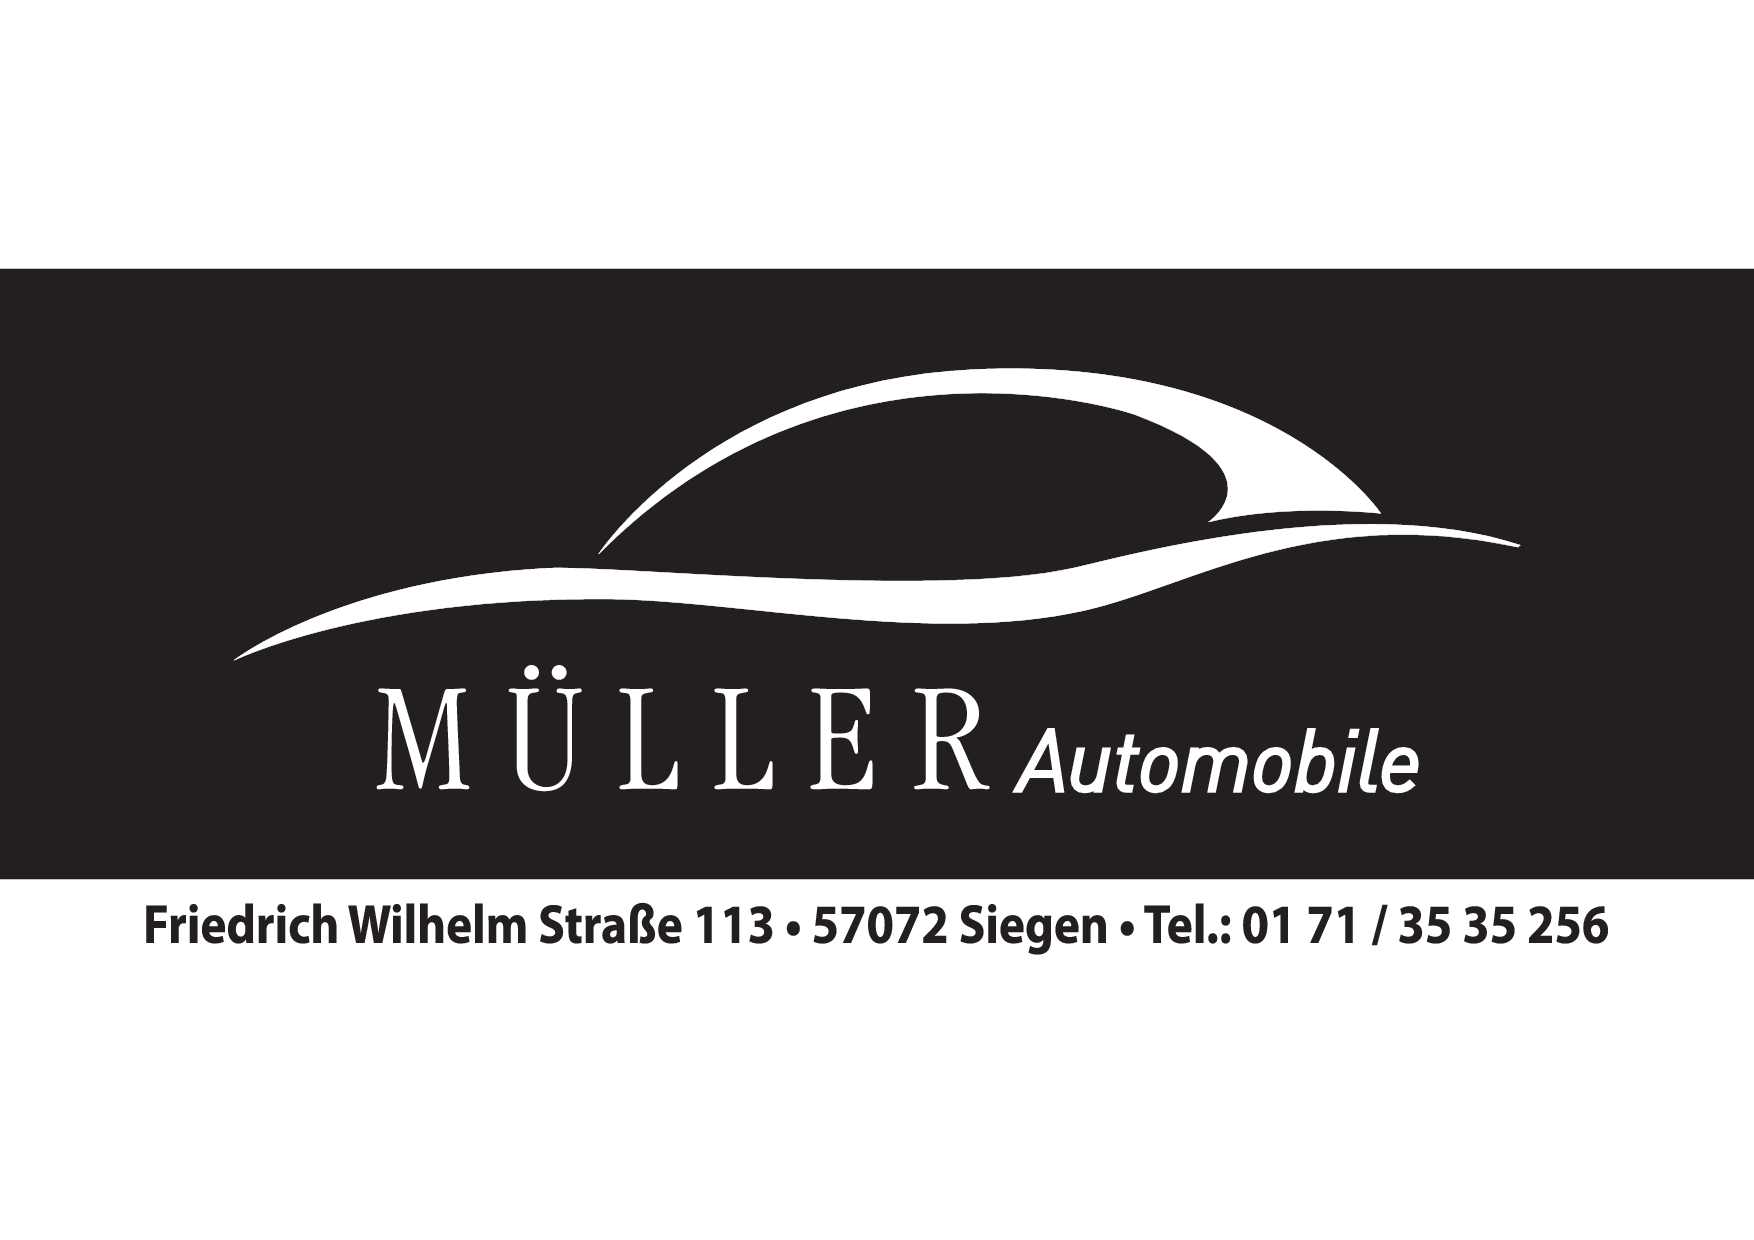 Müller_automobile_30__ 00x1200mm-001